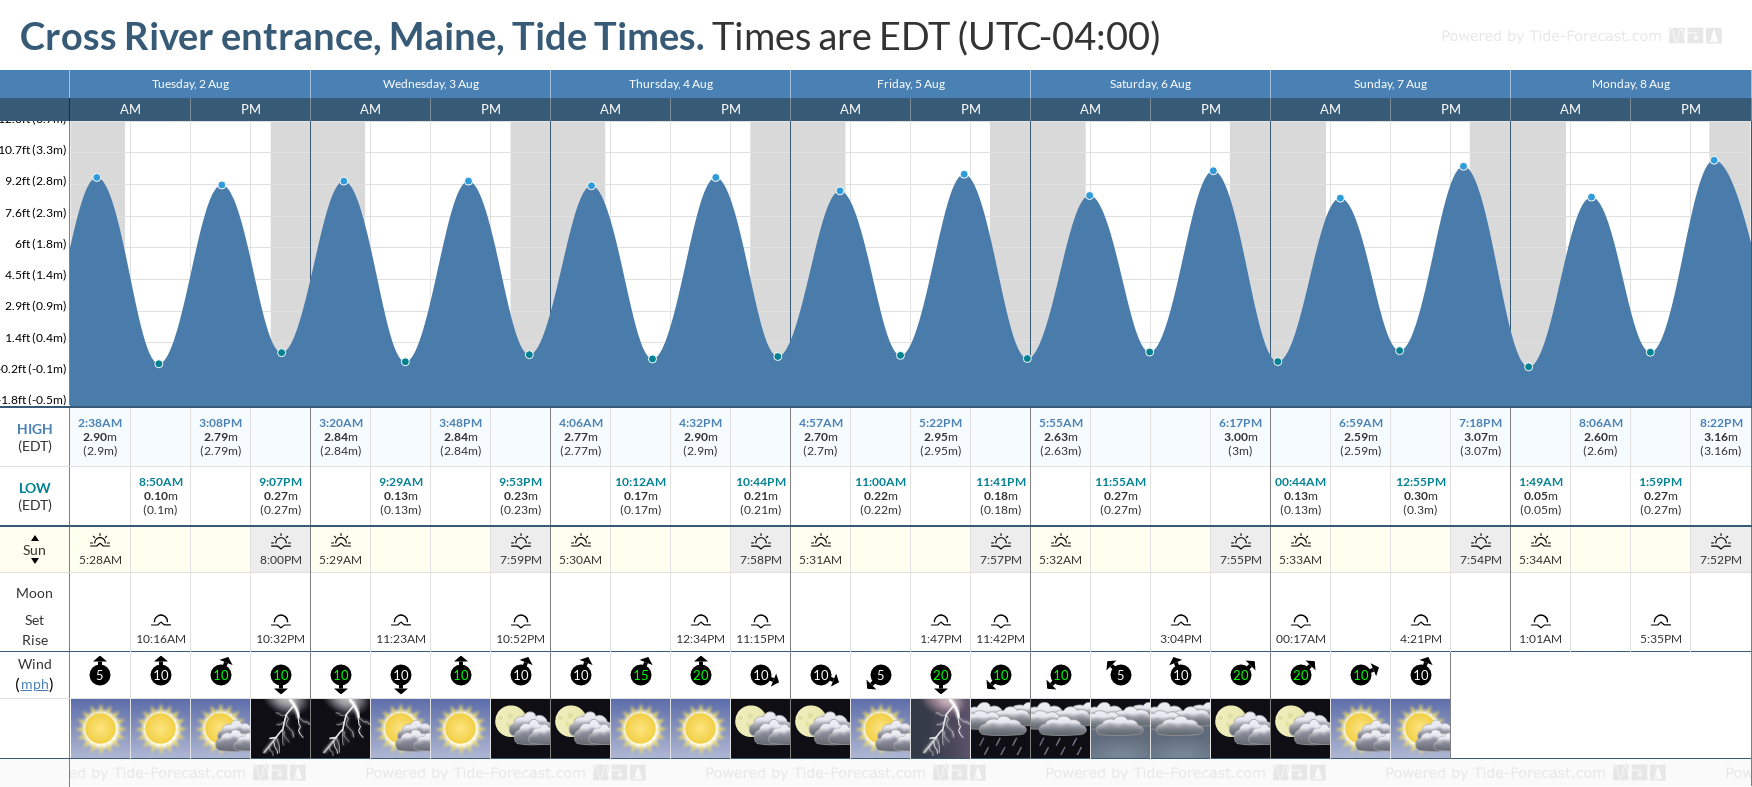 Cross River entrance, Maine Tide Chart including high and low tide tide times for the next 7 days